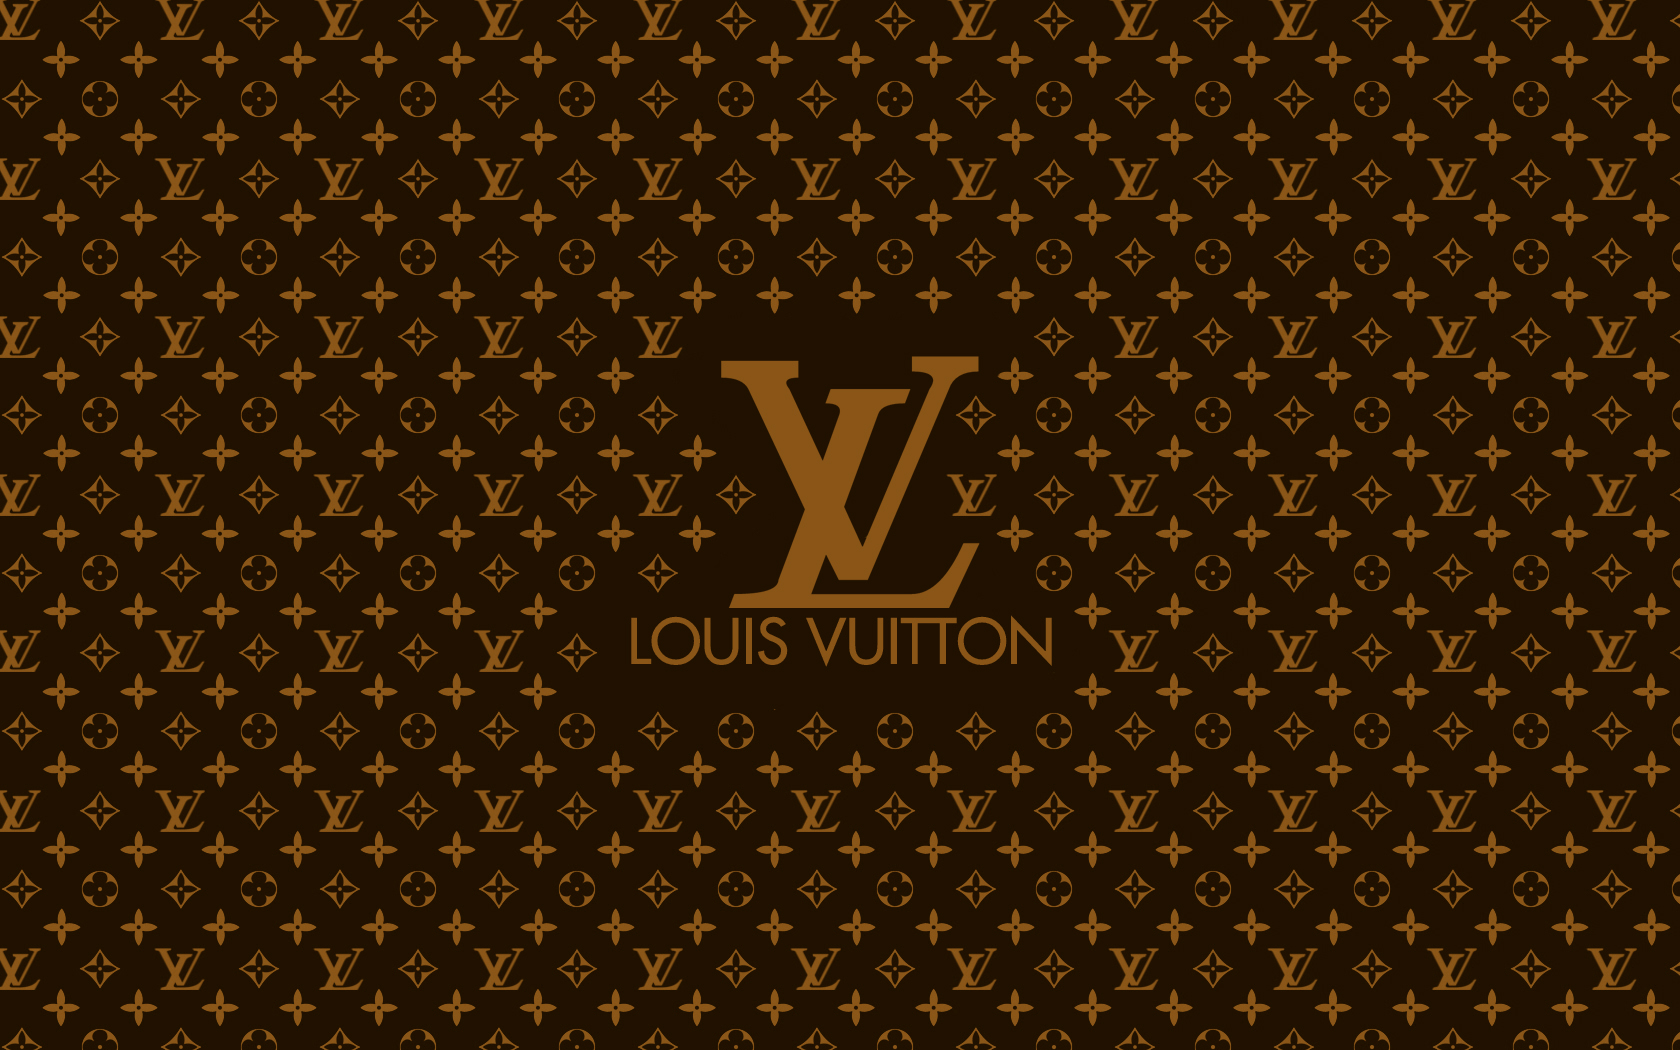 Louis vuitton wallpaper 16080 1680x1050 px hdwallsource louis vuitton wallpaper 16080 voltagebd Choice Image